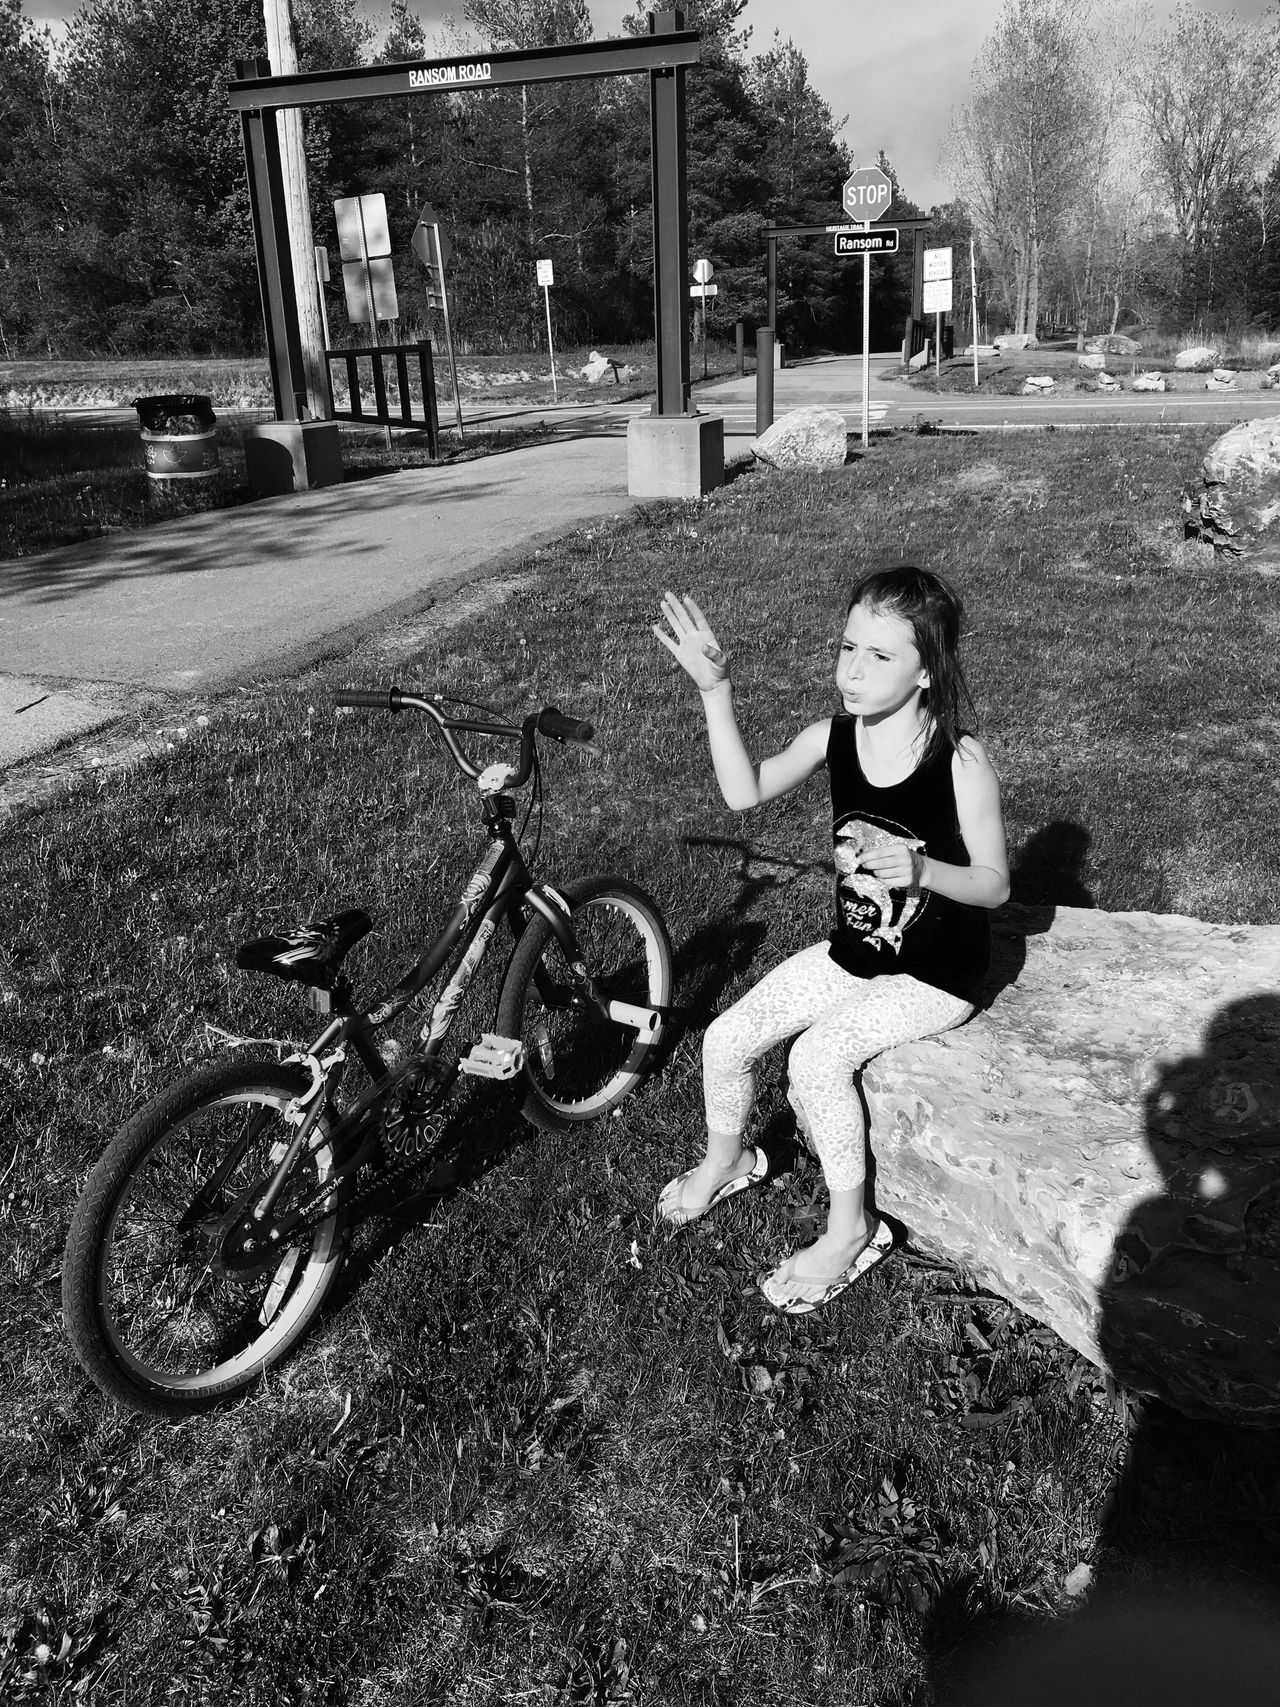 Childhood Transportation Land Vehicle Mode Of Transport Full Length Elementary Age Lifestyles Leisure Activity Casual Clothing Bicycle Day Outdoors Bike Trail Lancaster Ny Black And White Transportation Daughter Pit Stop Biking Making Wishes Fresh On Eyeem  My Favorite Place